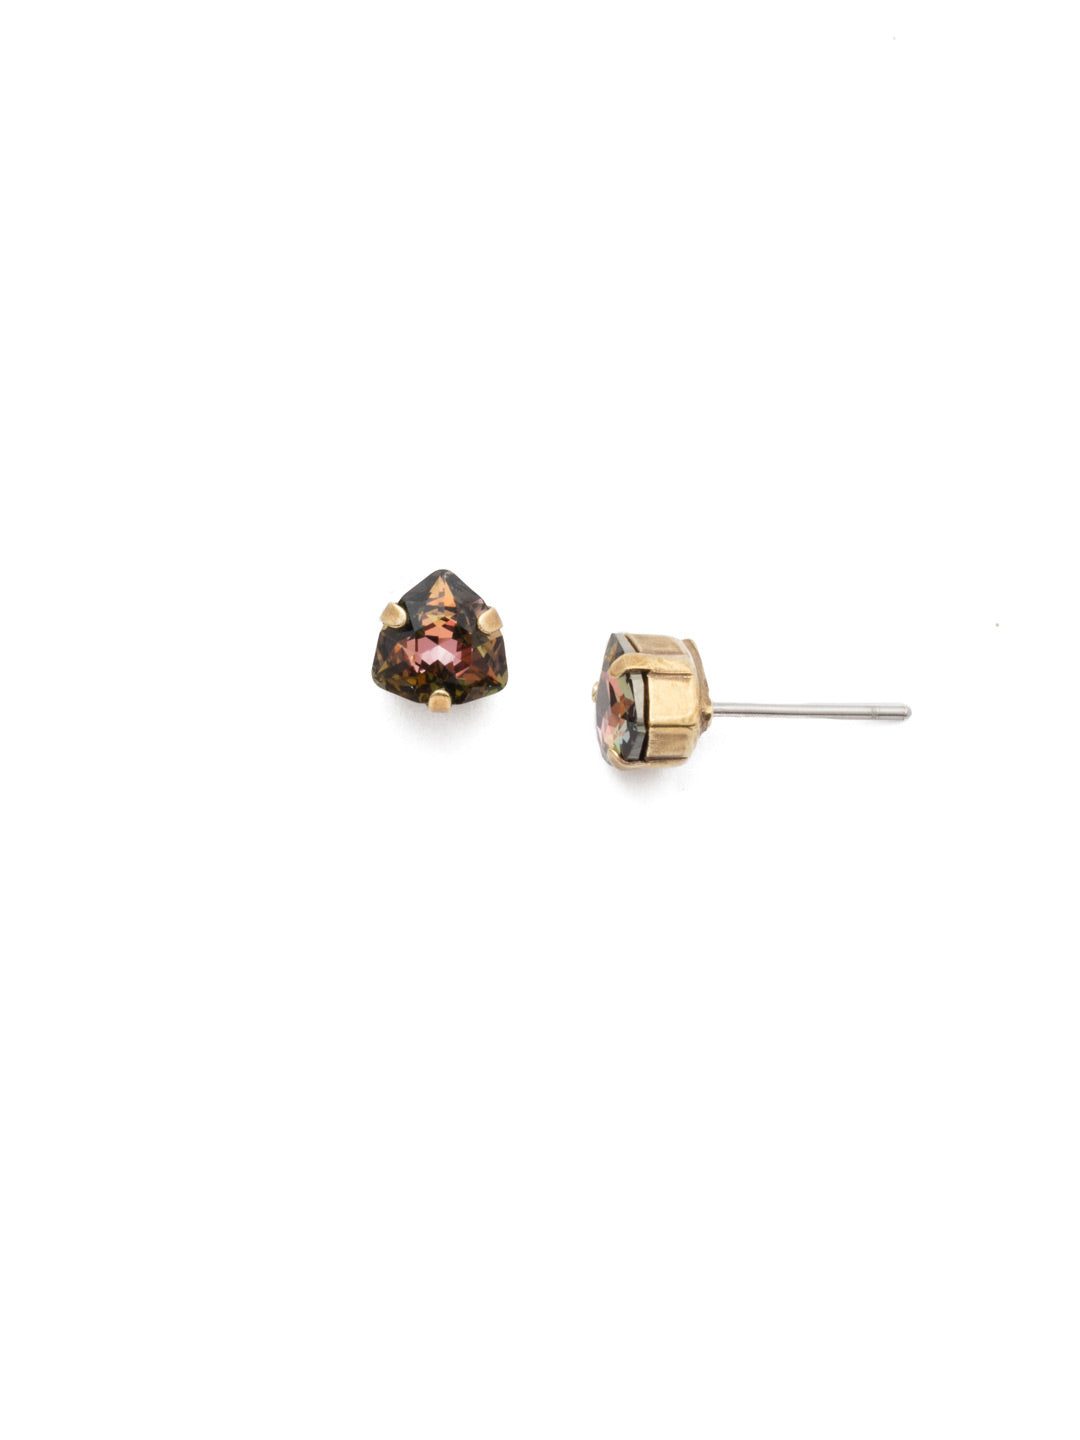 Sedge Stud Earrings - EDX1AGSDE